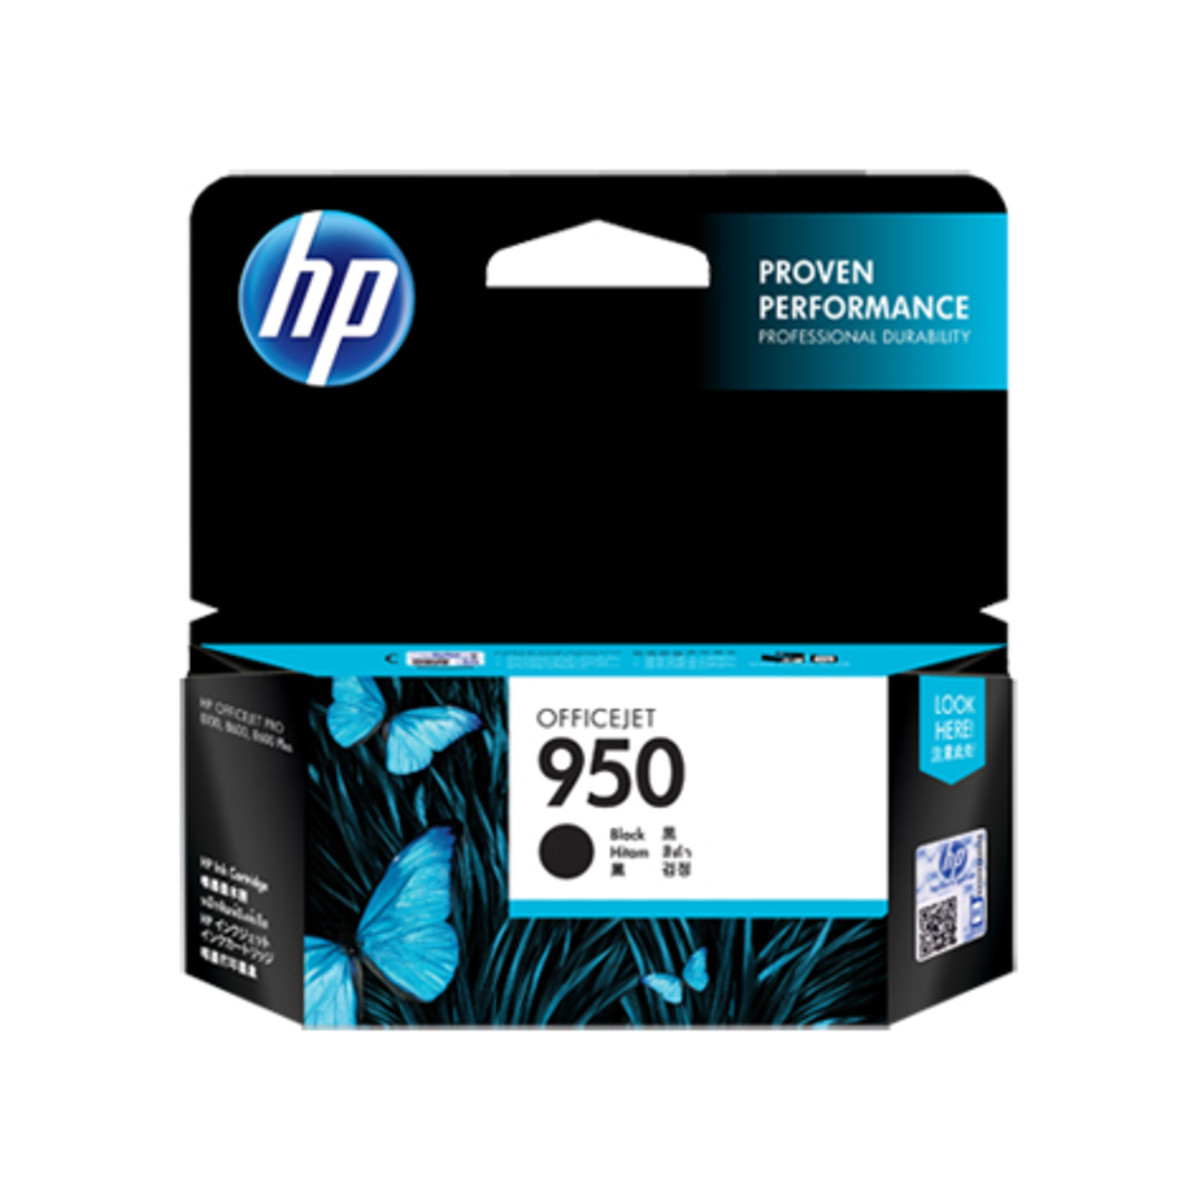 HP 950 (CN049AA) Black Ink Cartridge